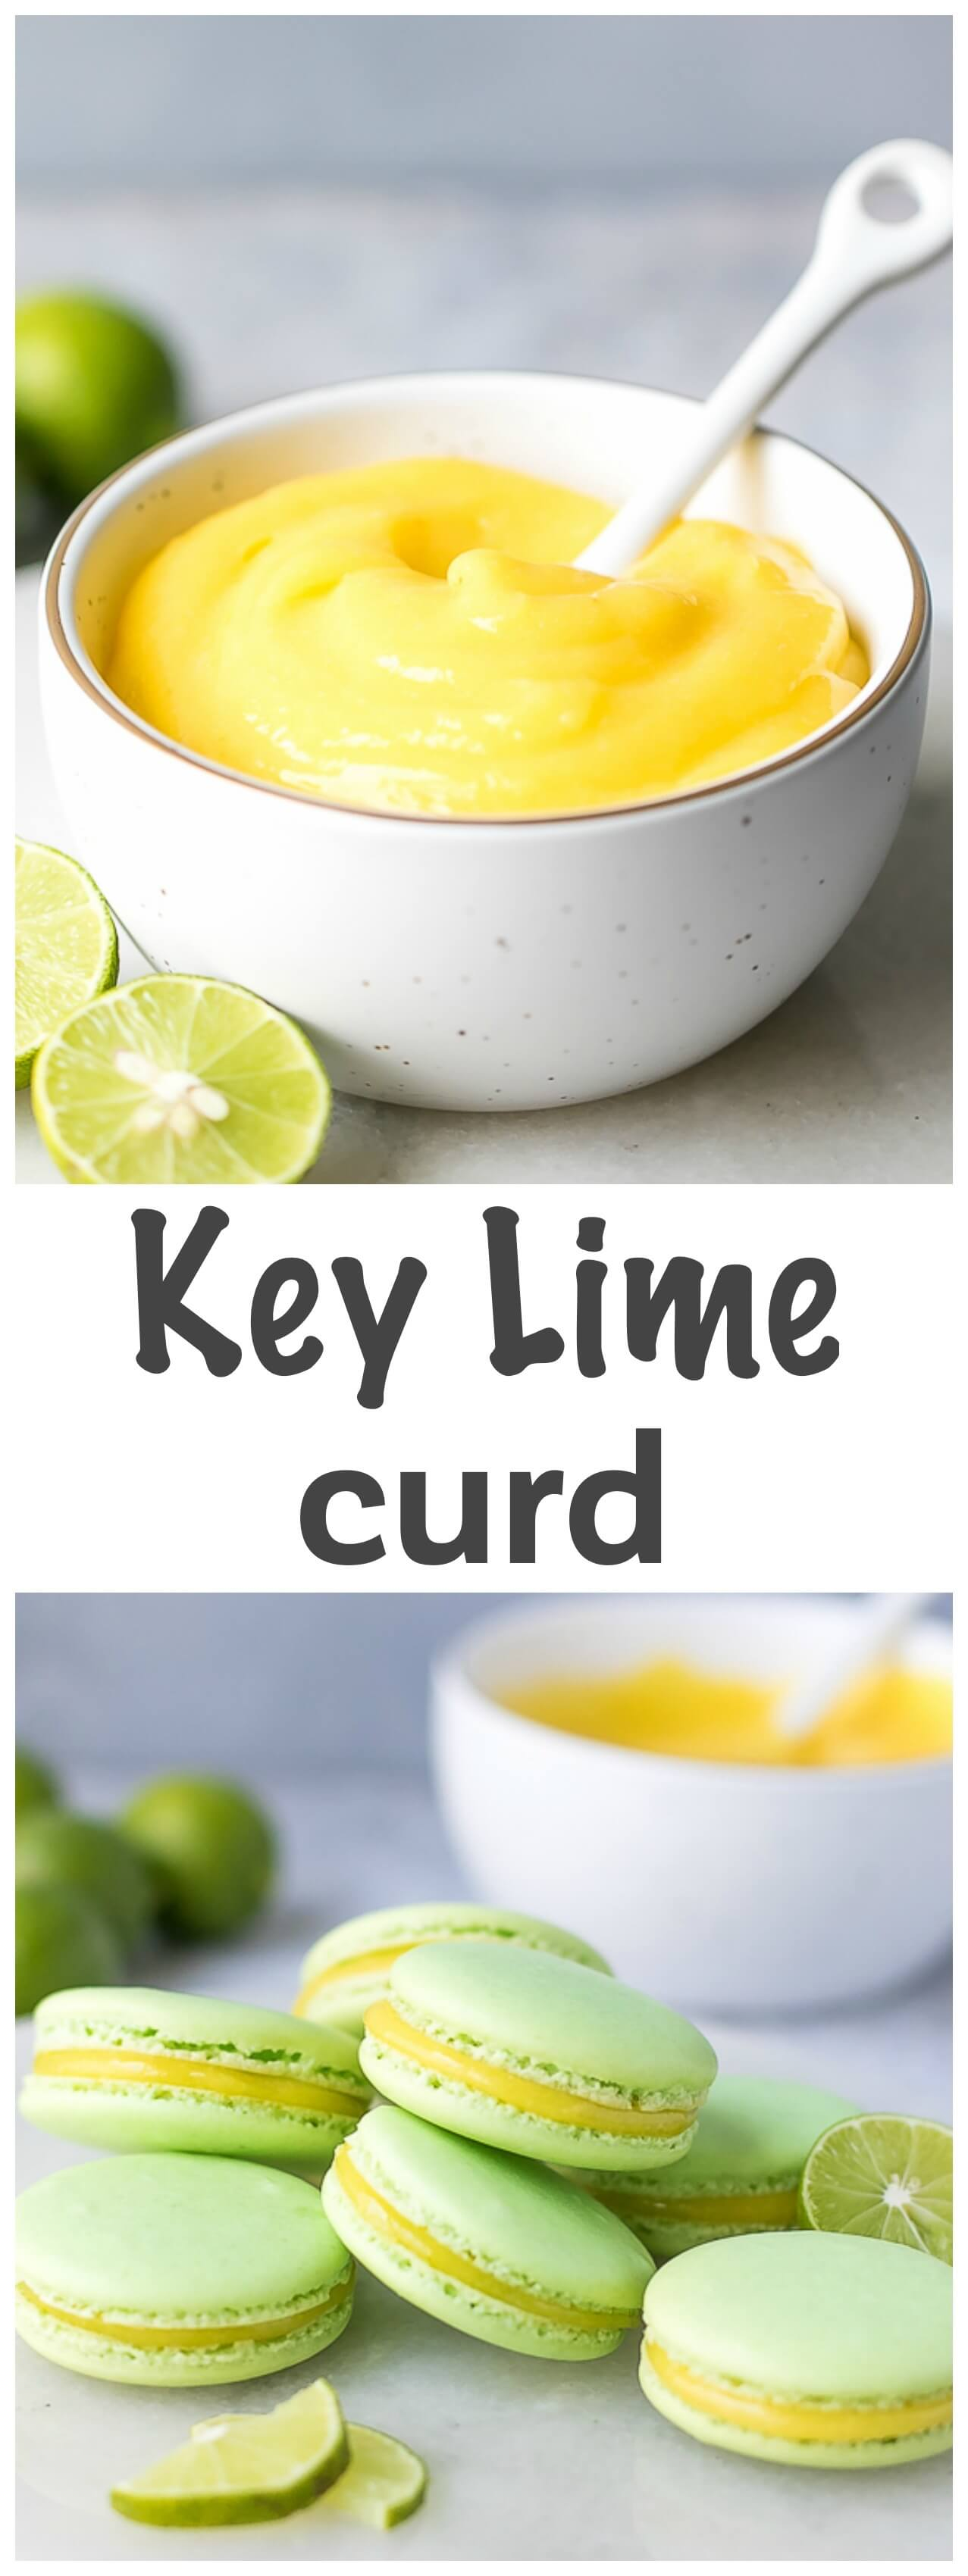 Key Lime Curd Recipe - tangy, rich and sweet, this key lime curd is easy to make and perfect for pancakes, toast, macarons or to just eat it with a spoon.